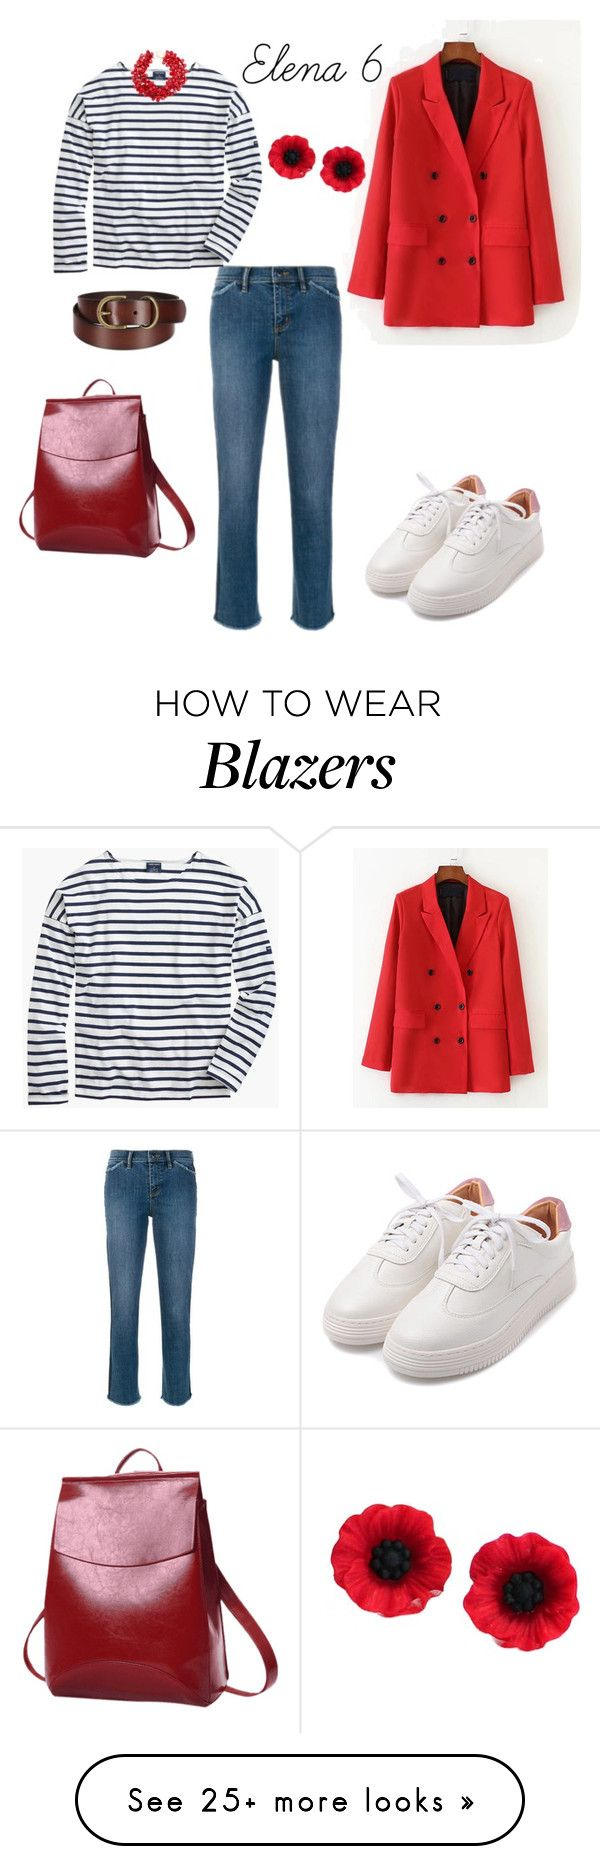 """""""Elena_6"""" by leila-image-style on Polyvore featuring Tory Burch, Saint James, Kenneth Jay Lane and Uniqlo"""